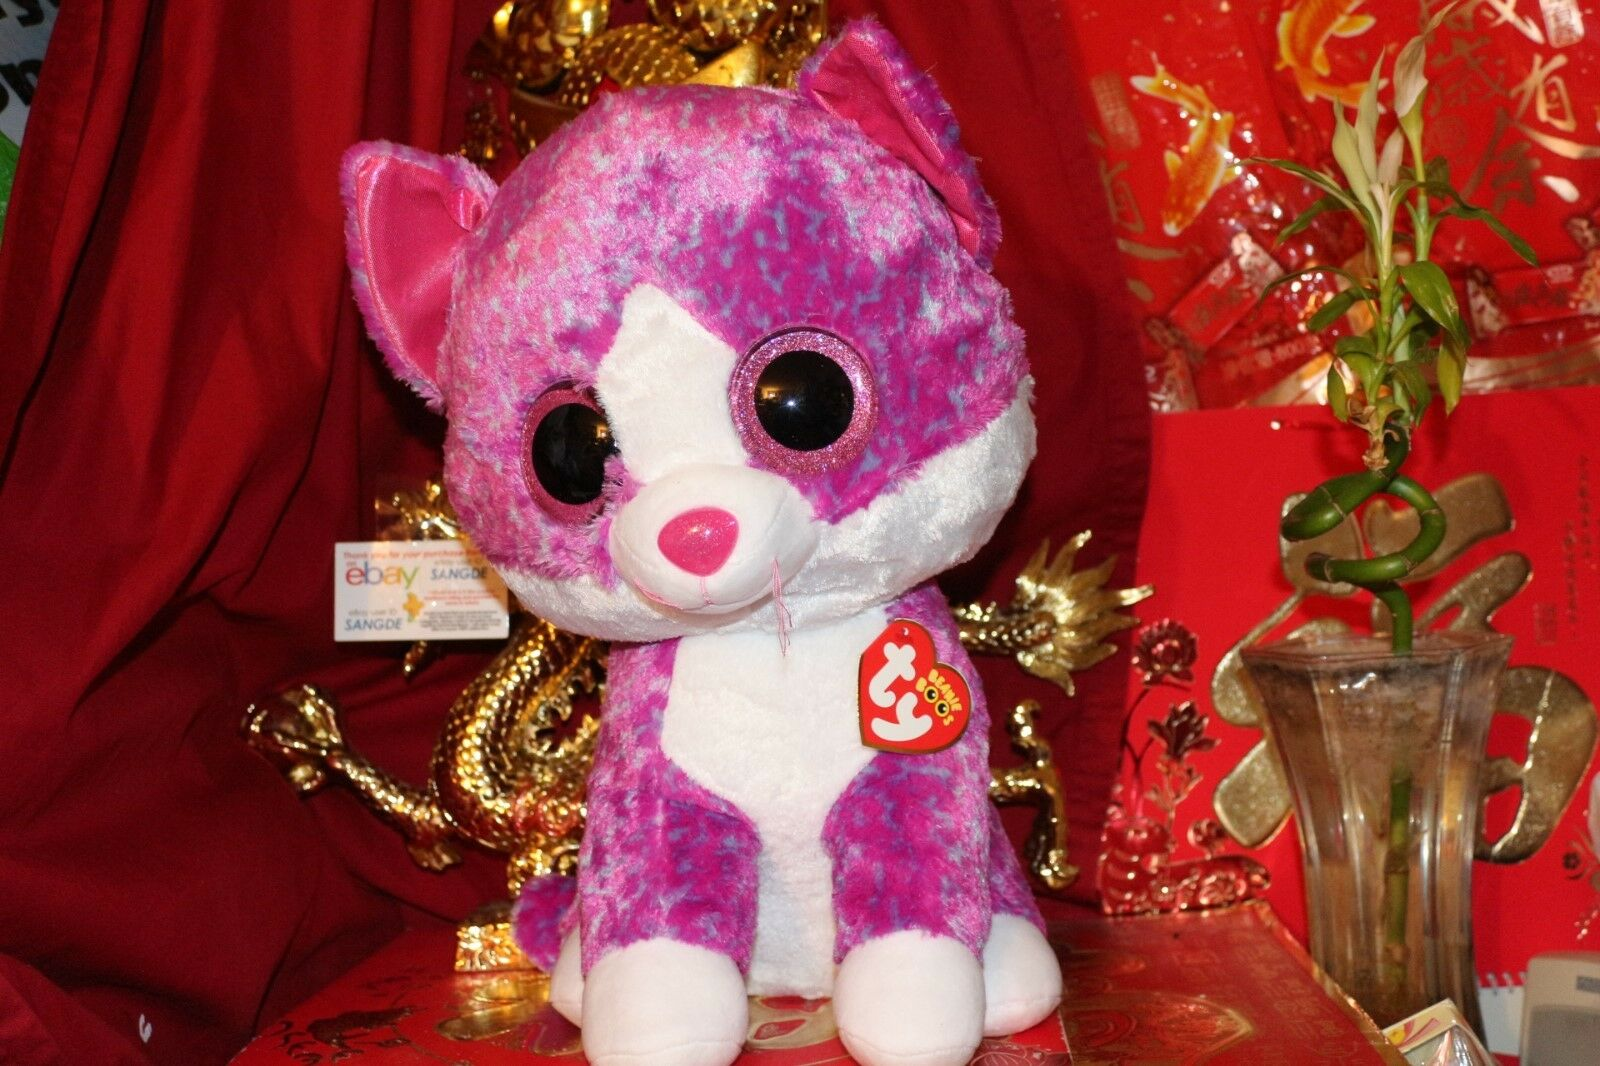 b901ac69cca TY BEANIE BOOS CHARLOTTE CHARLOTTE BOOS CAT.JUMBO.18 .CLAIRE S  EXCLUSIVE.2017